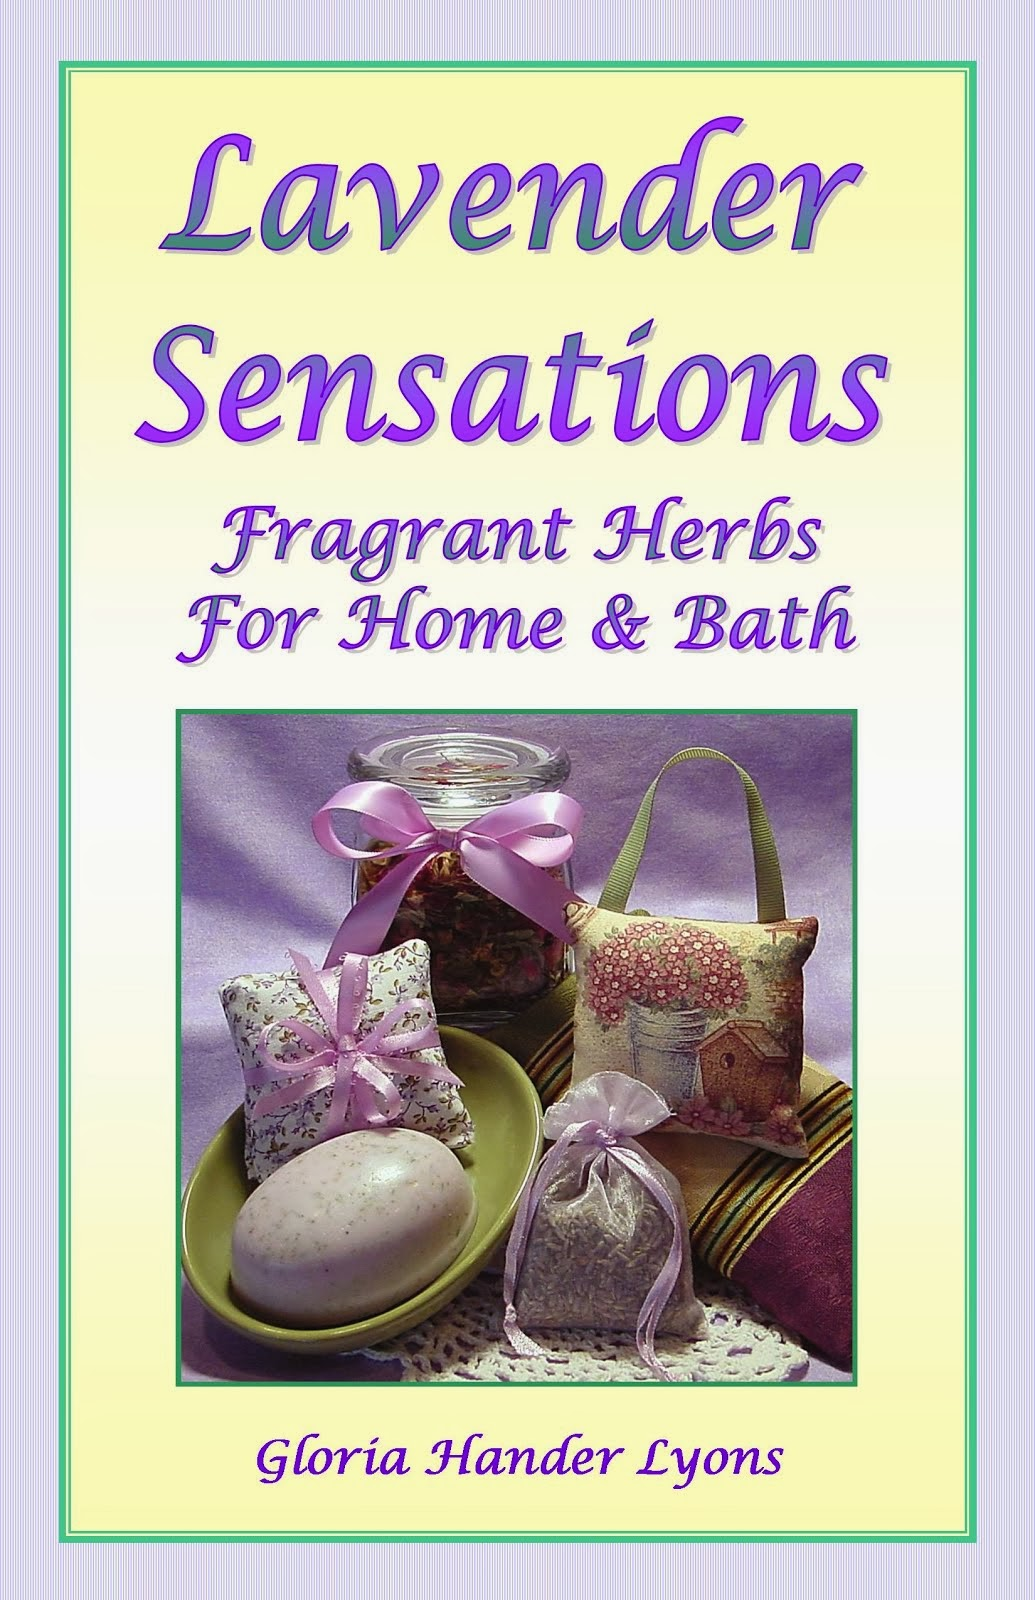 Lavender Sensations: Fragrant Herbs For Home & Bath